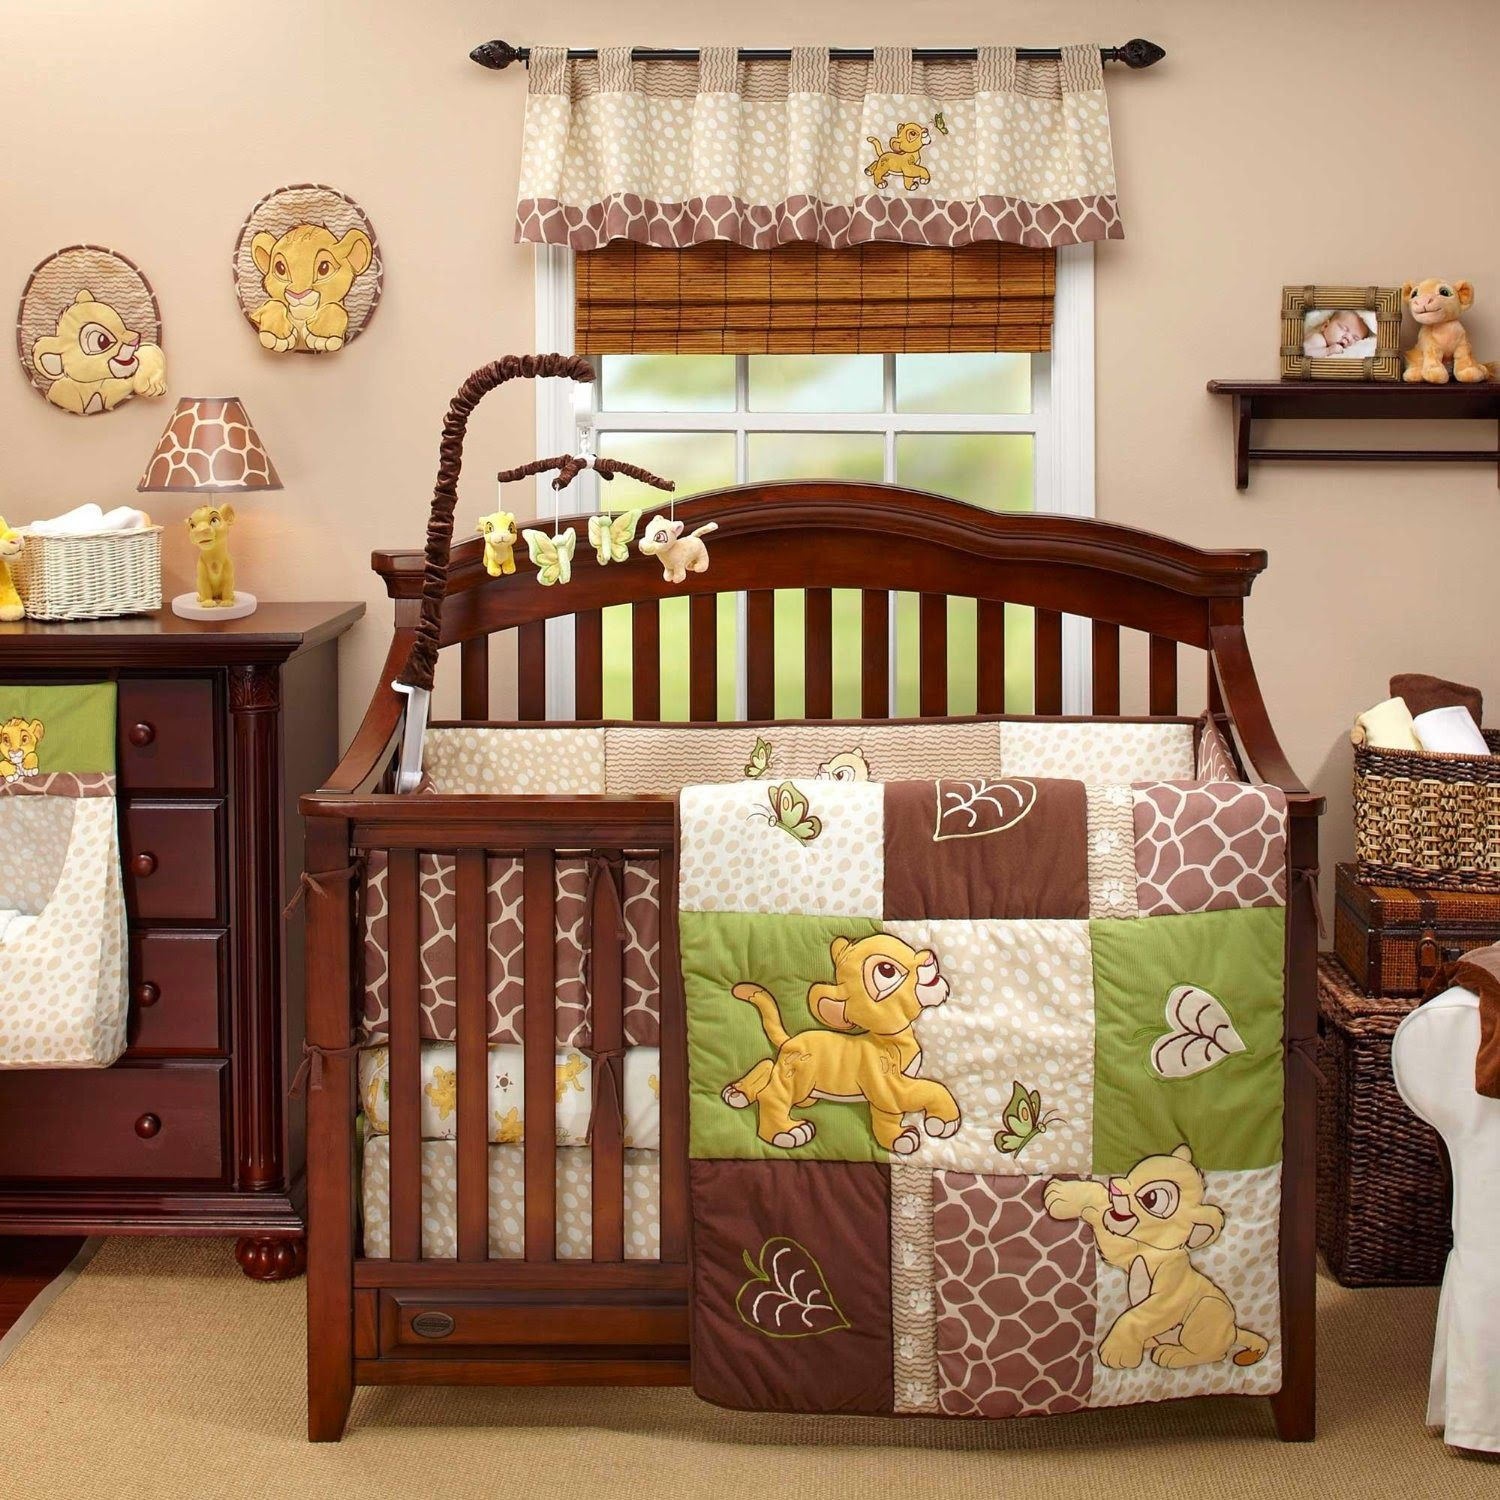 Baby Nursery Decorating Checklist: Lion King Baby Nursery Decor And Crib Sets